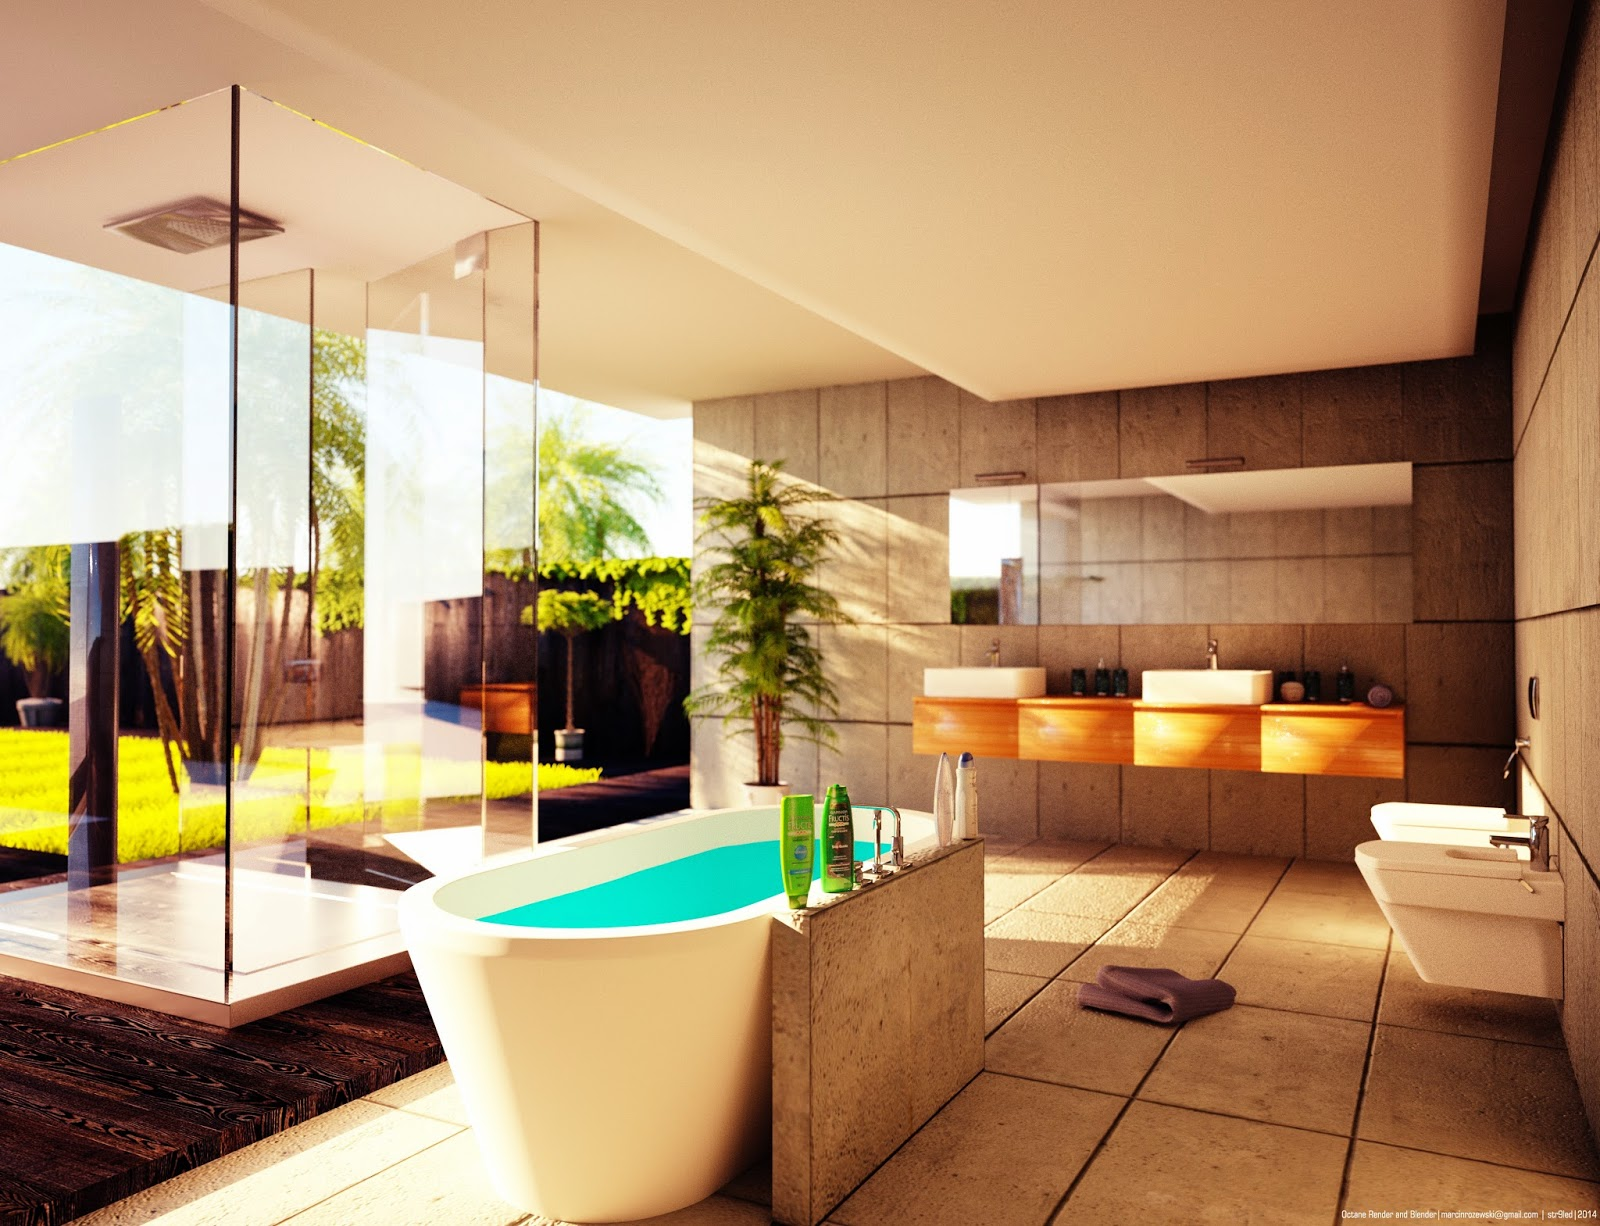 Bathroom Architectural Rendering - BlenderNation